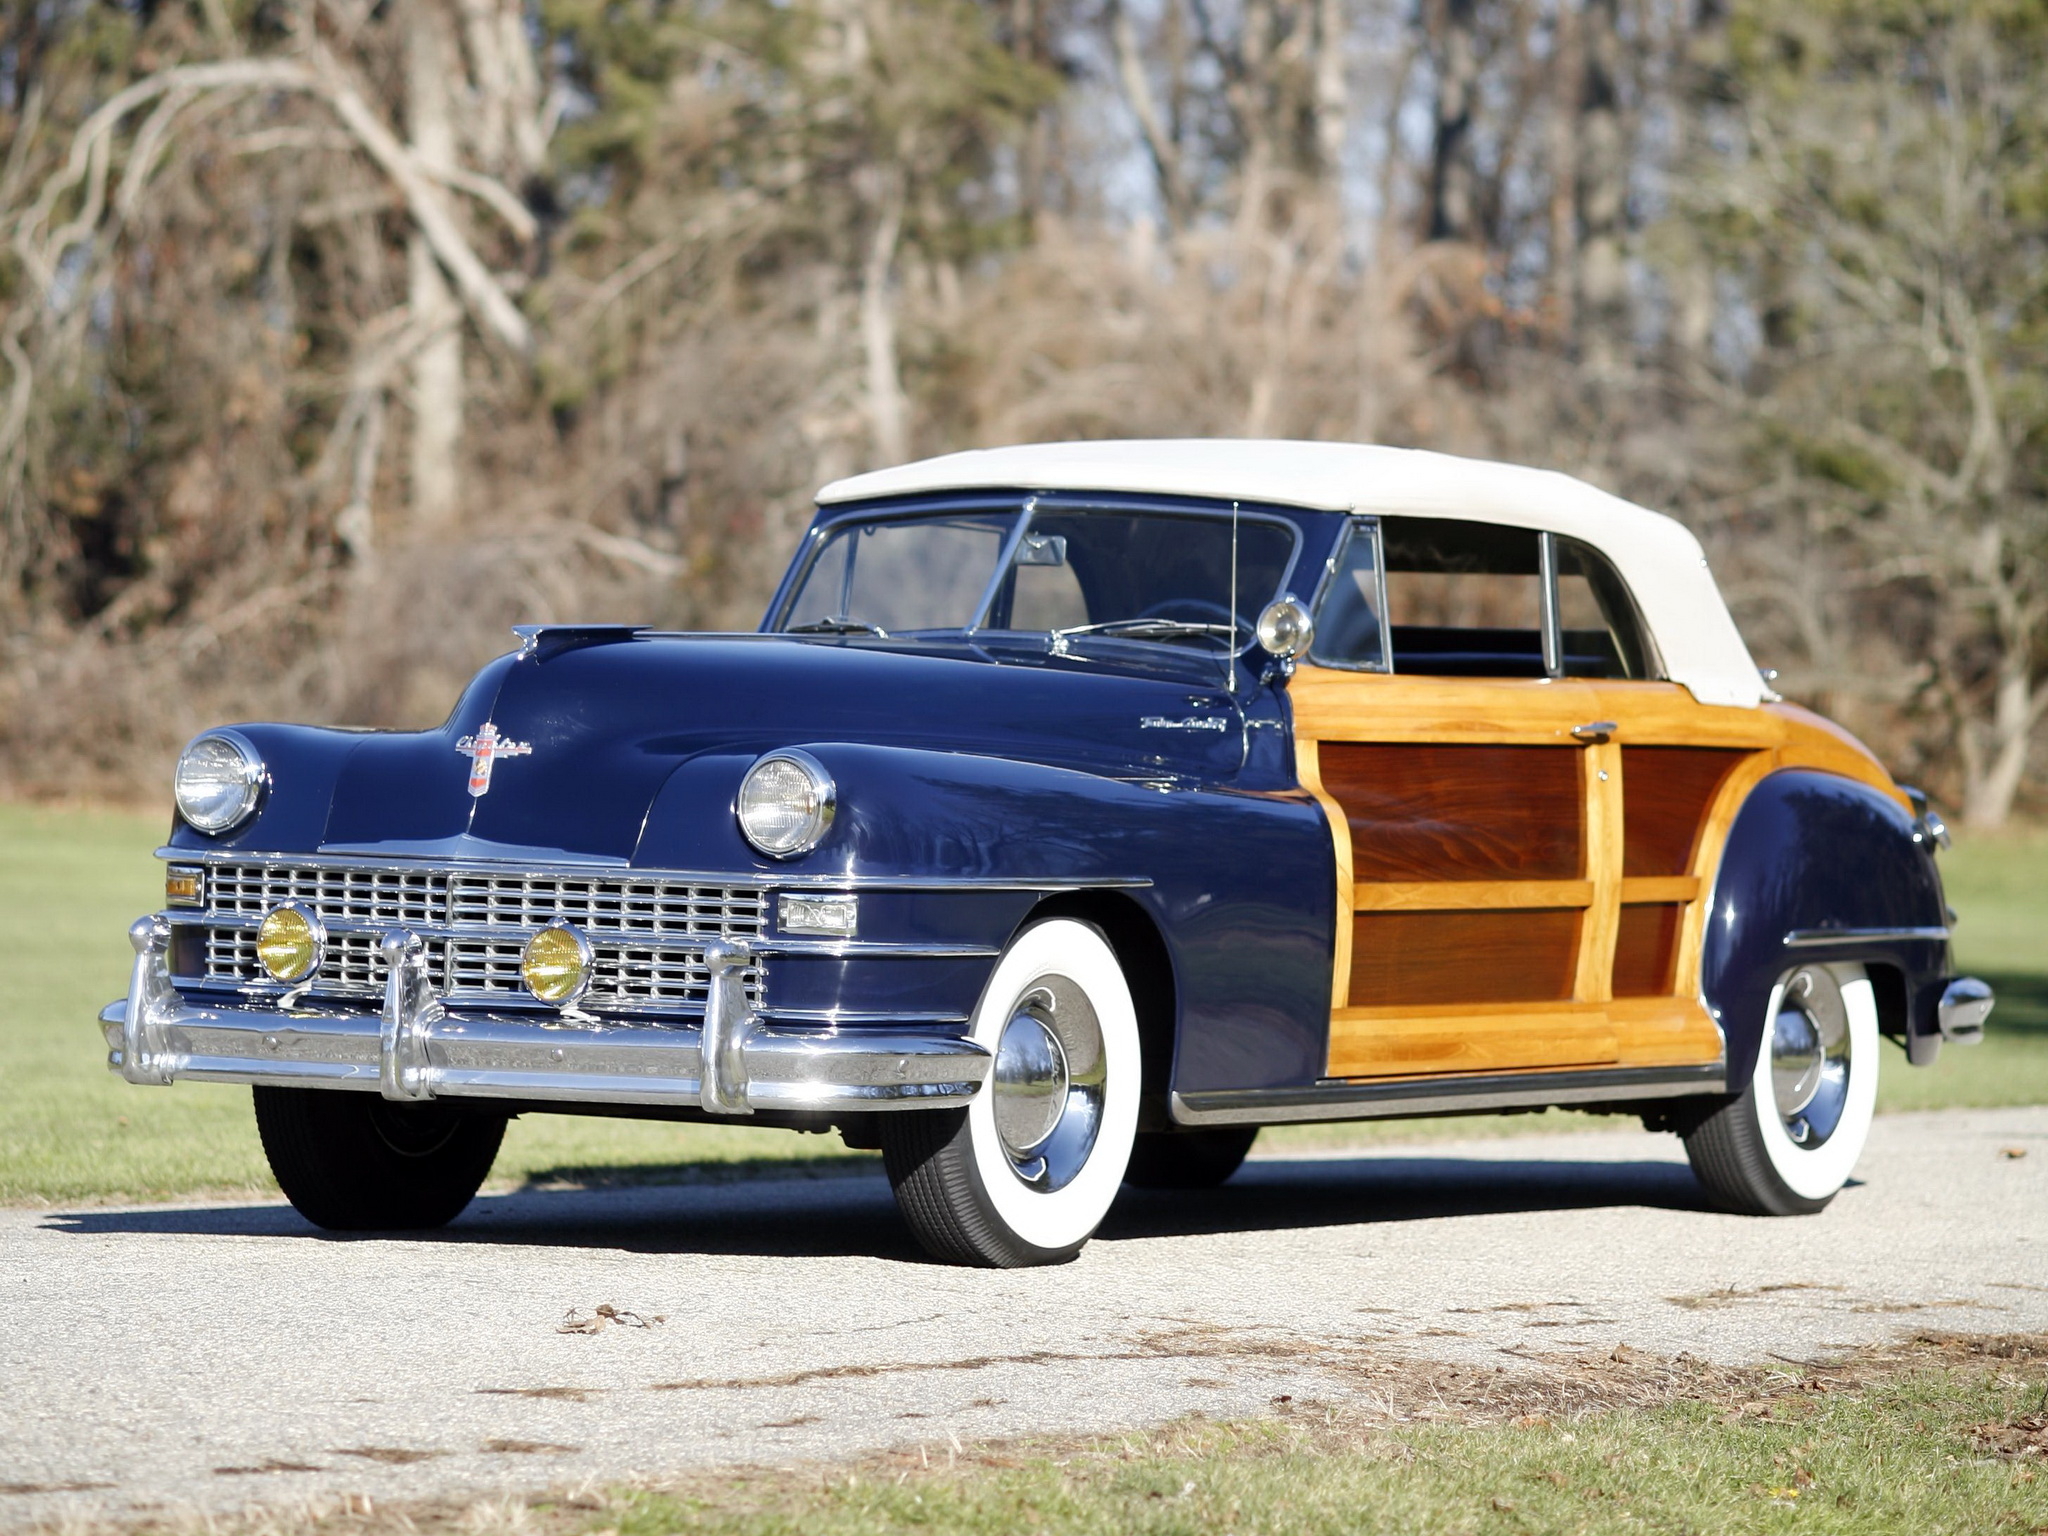 1947 Chrysler Town Amp Country Convertible Retro H Wallpaper 2048x1536 114286 Wallpaperup